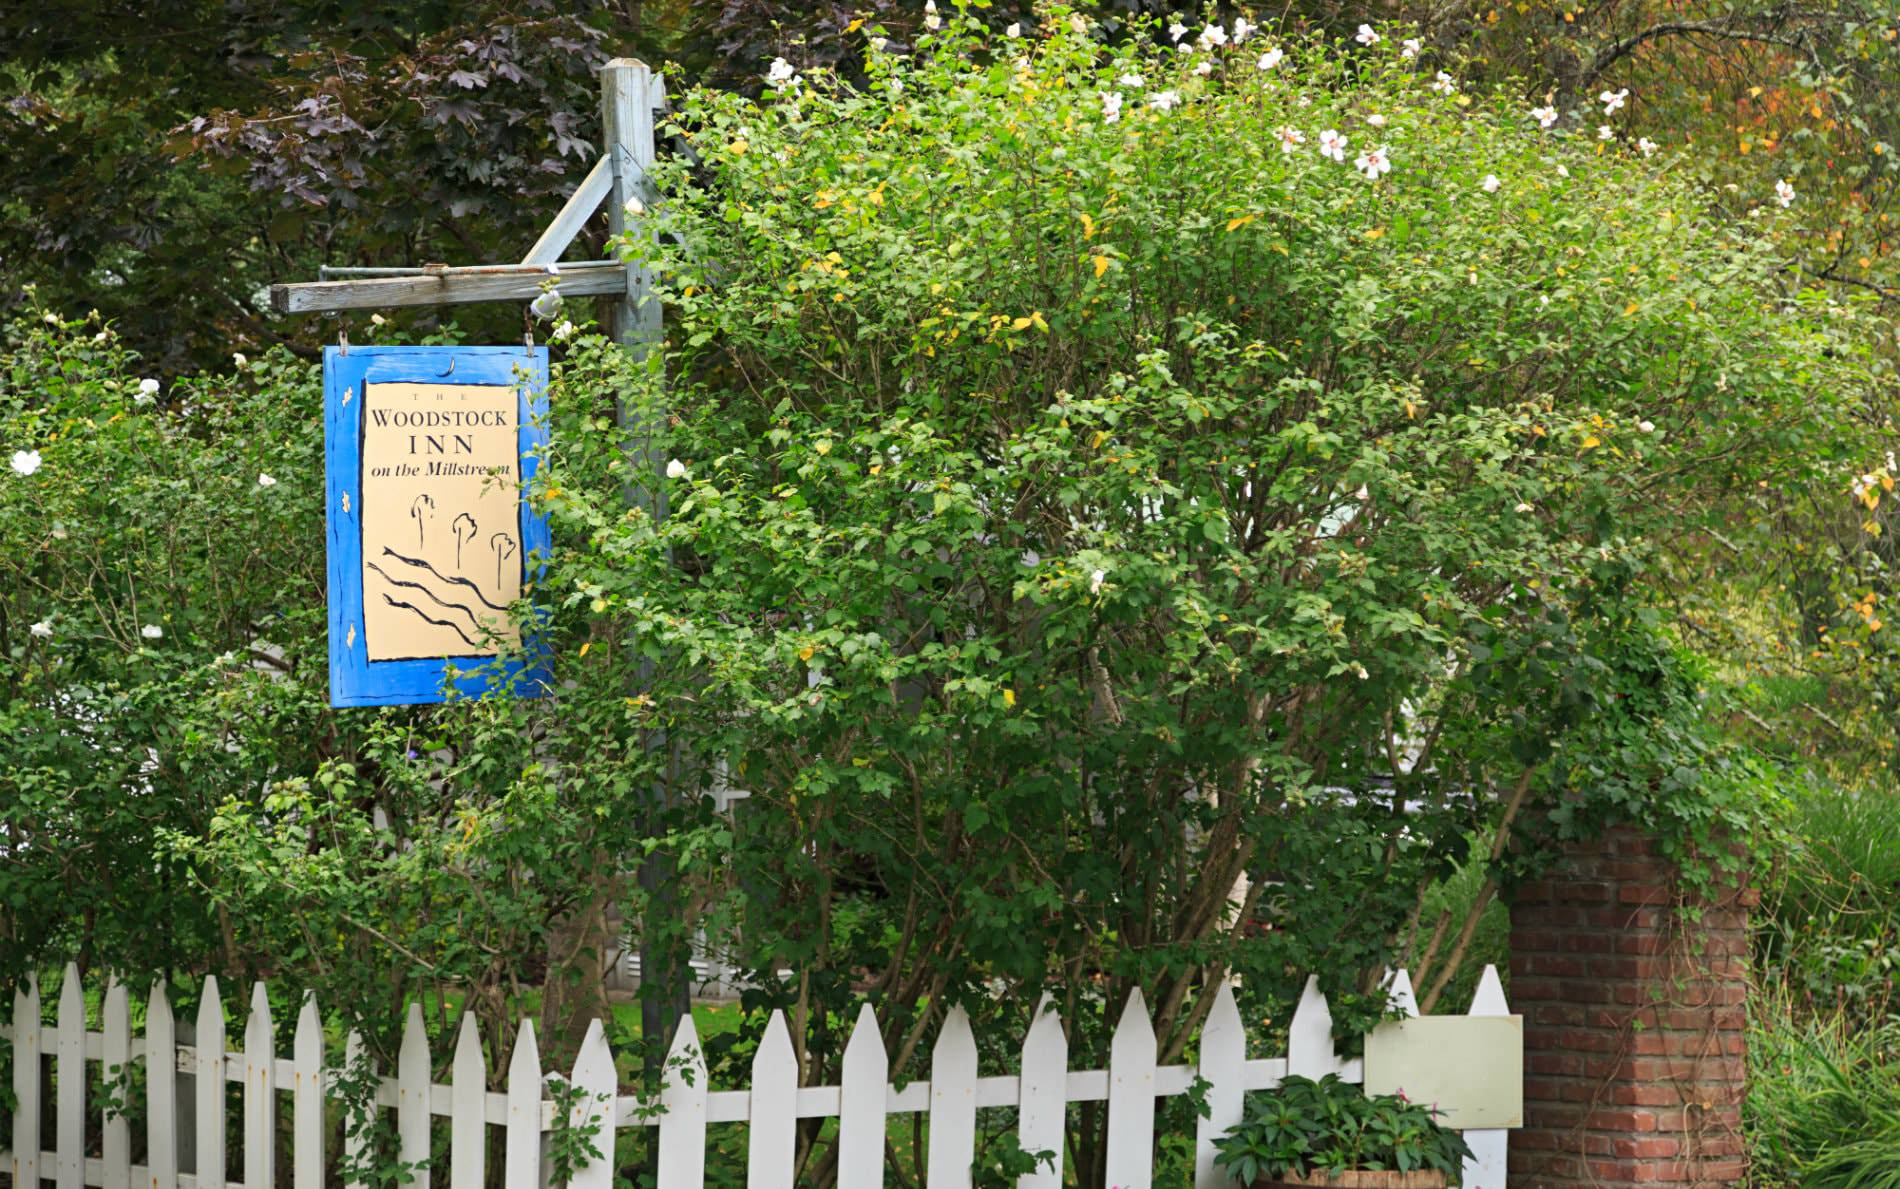 Beige and blue Woodstock Inn sign hanging from rustic wood post over a white picket fence surrounded by greenery